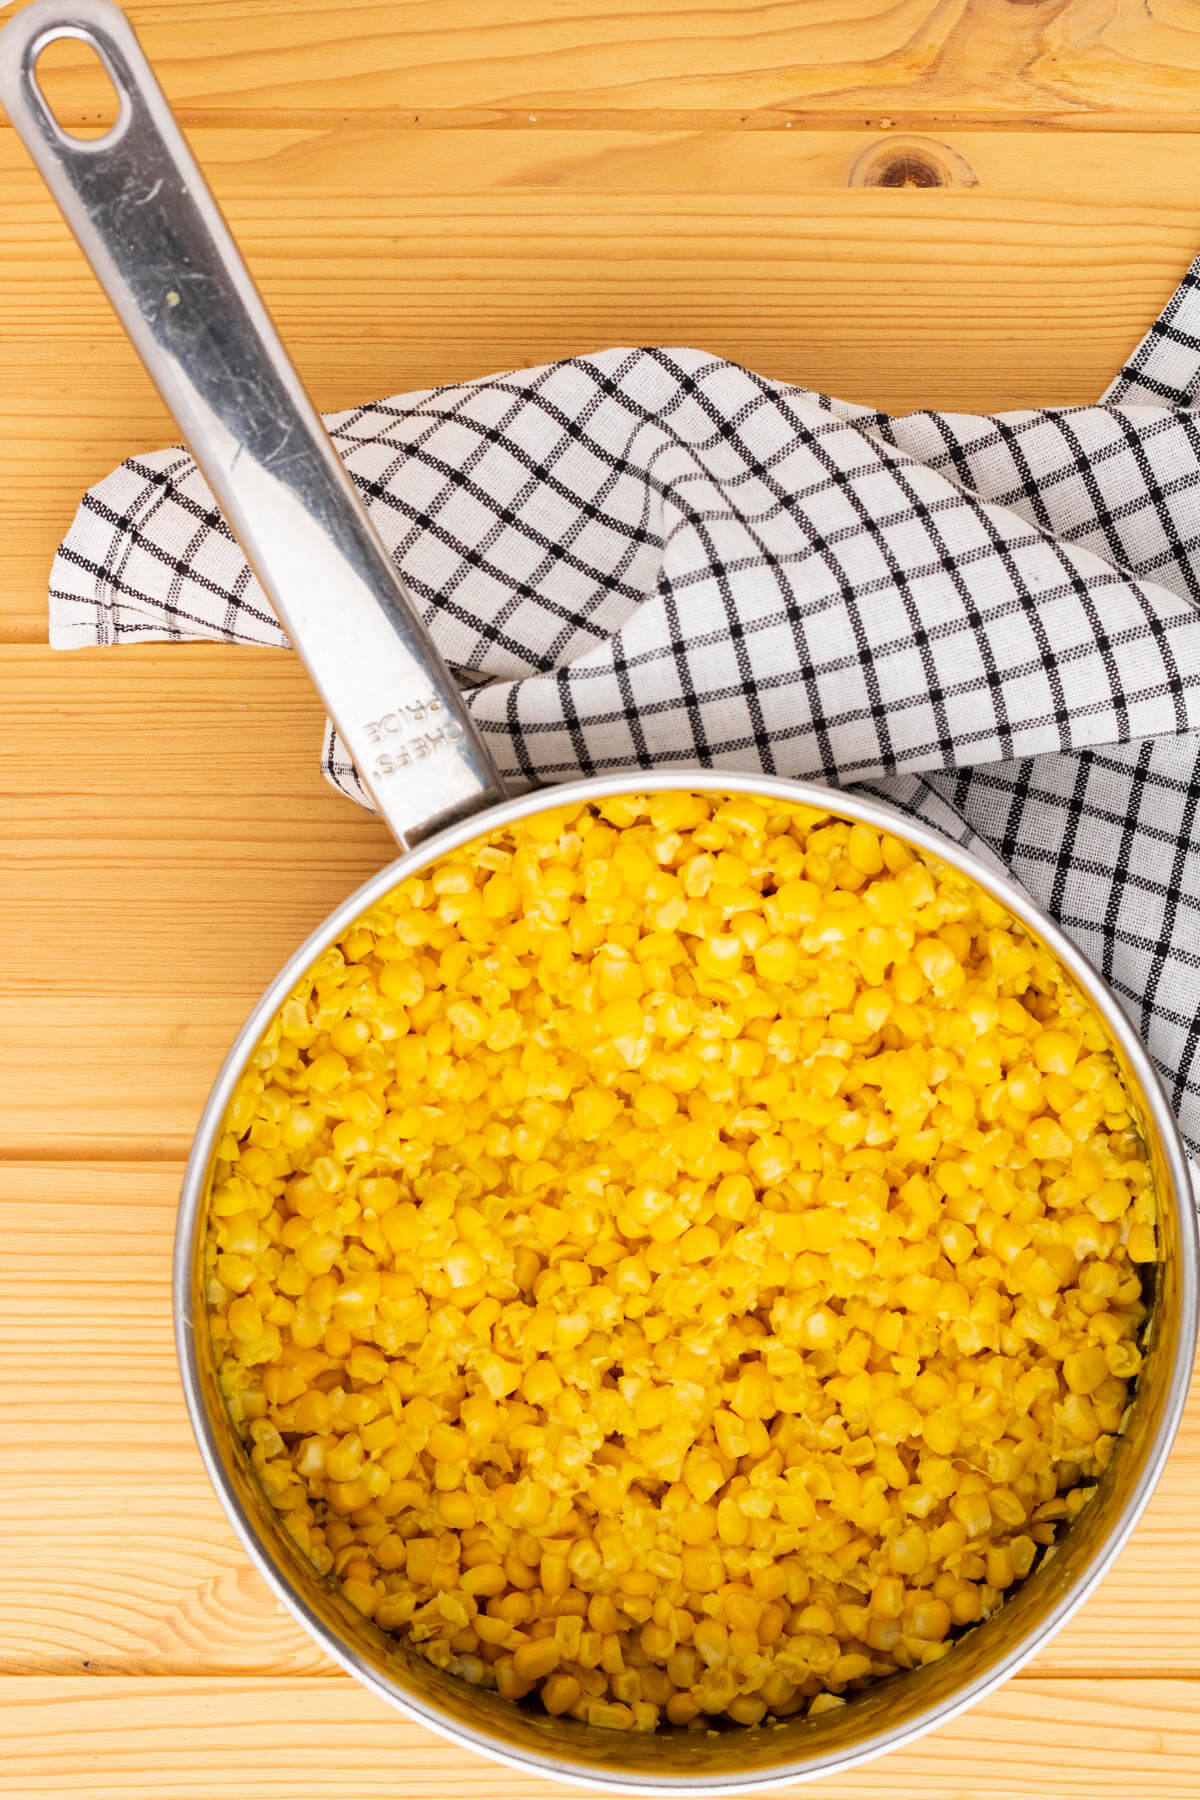 A saucepan filled with yellow corn kernels.